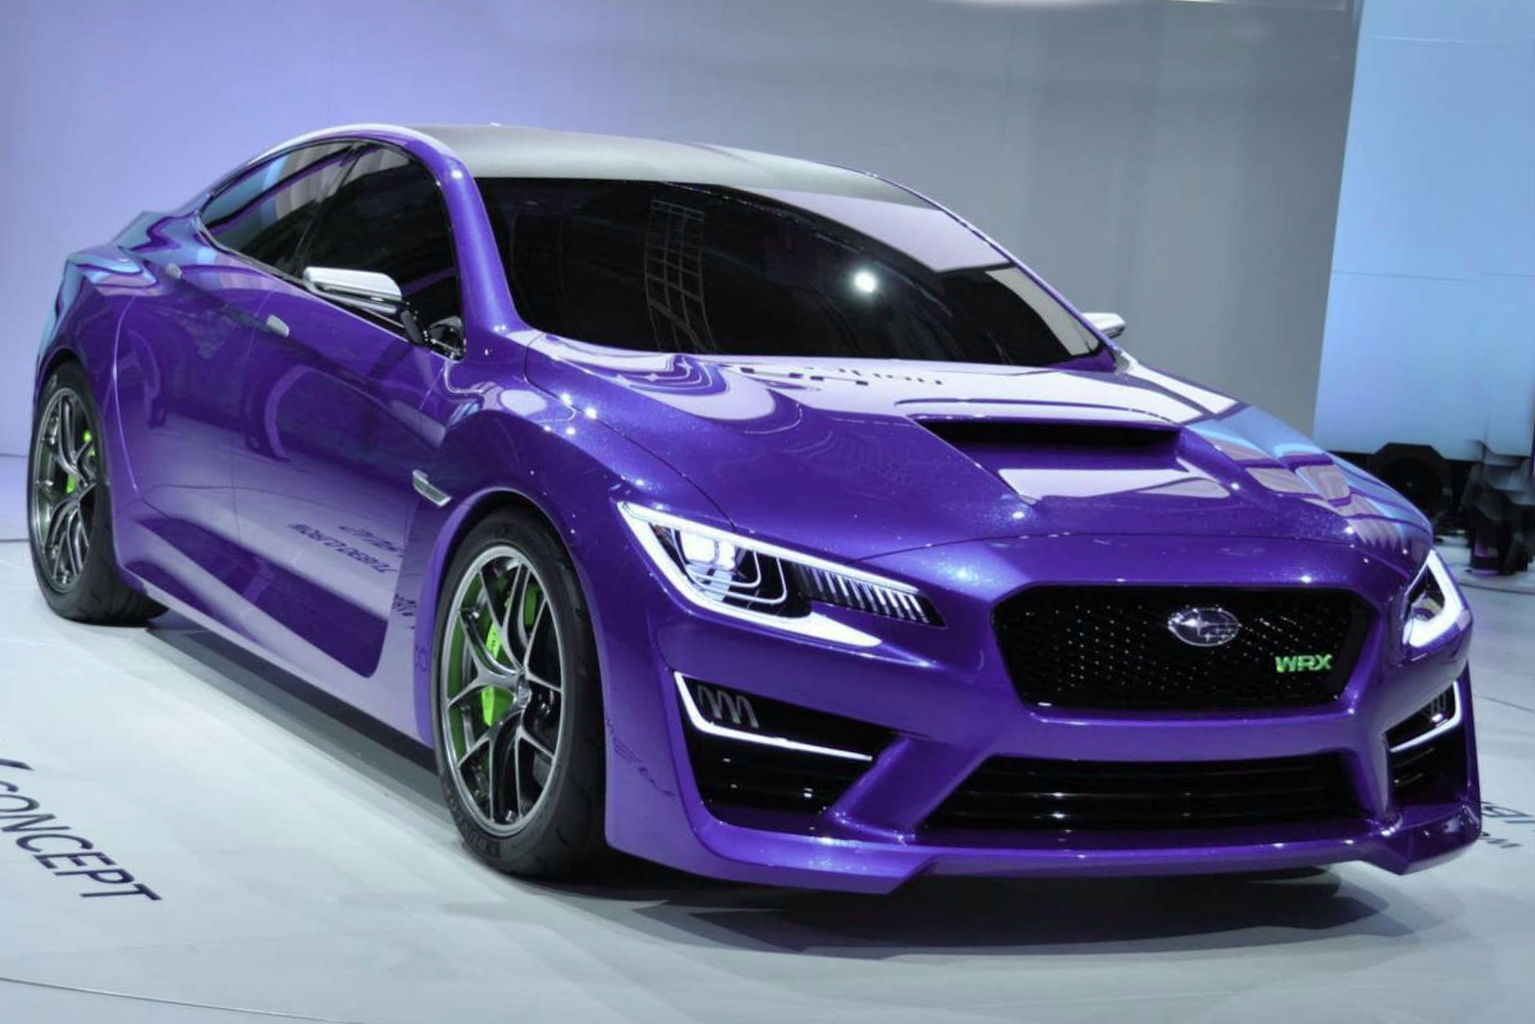 The latest Subaru WRX is a nominee of the best car to buy